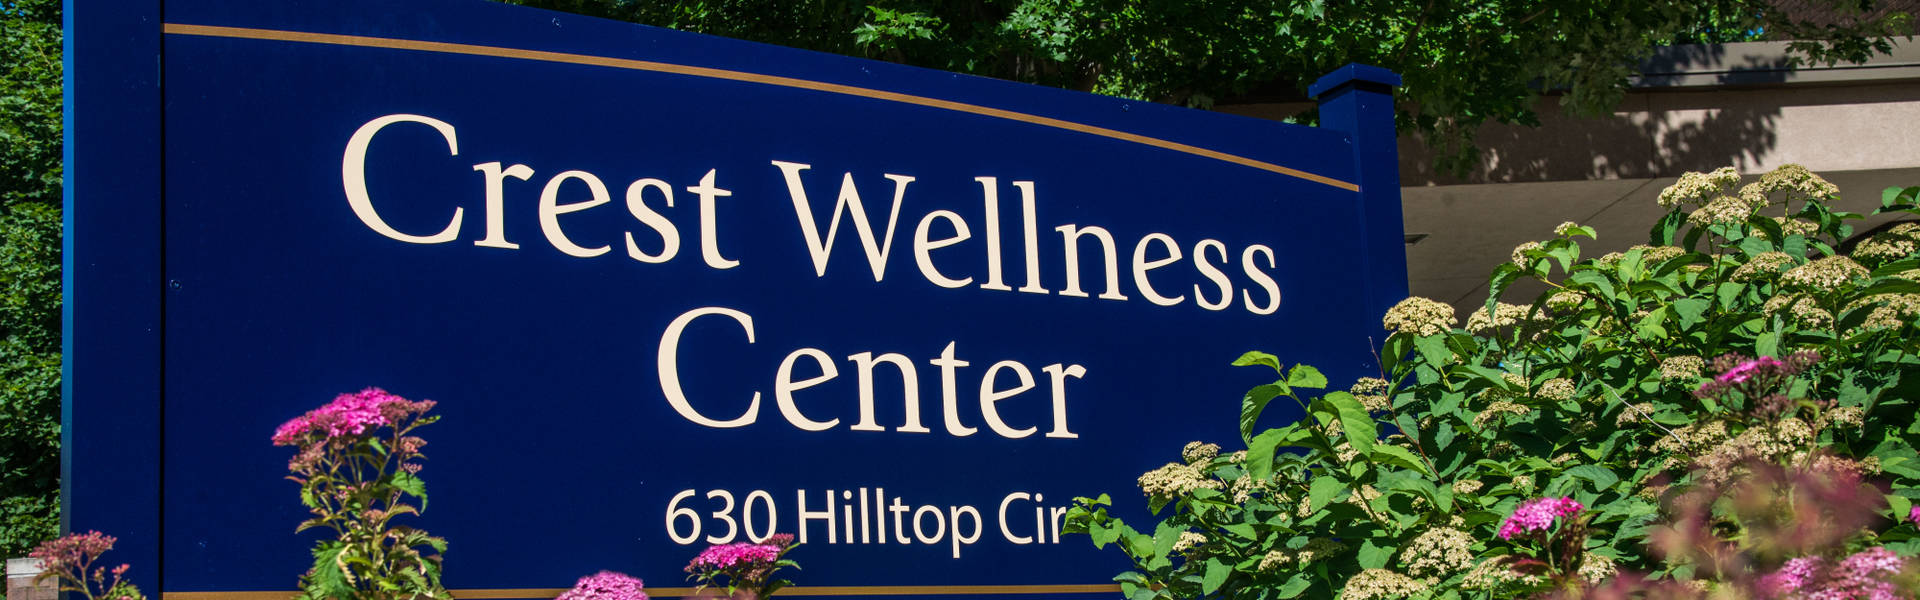 Crest Wellness Center sign surrounded by flowers